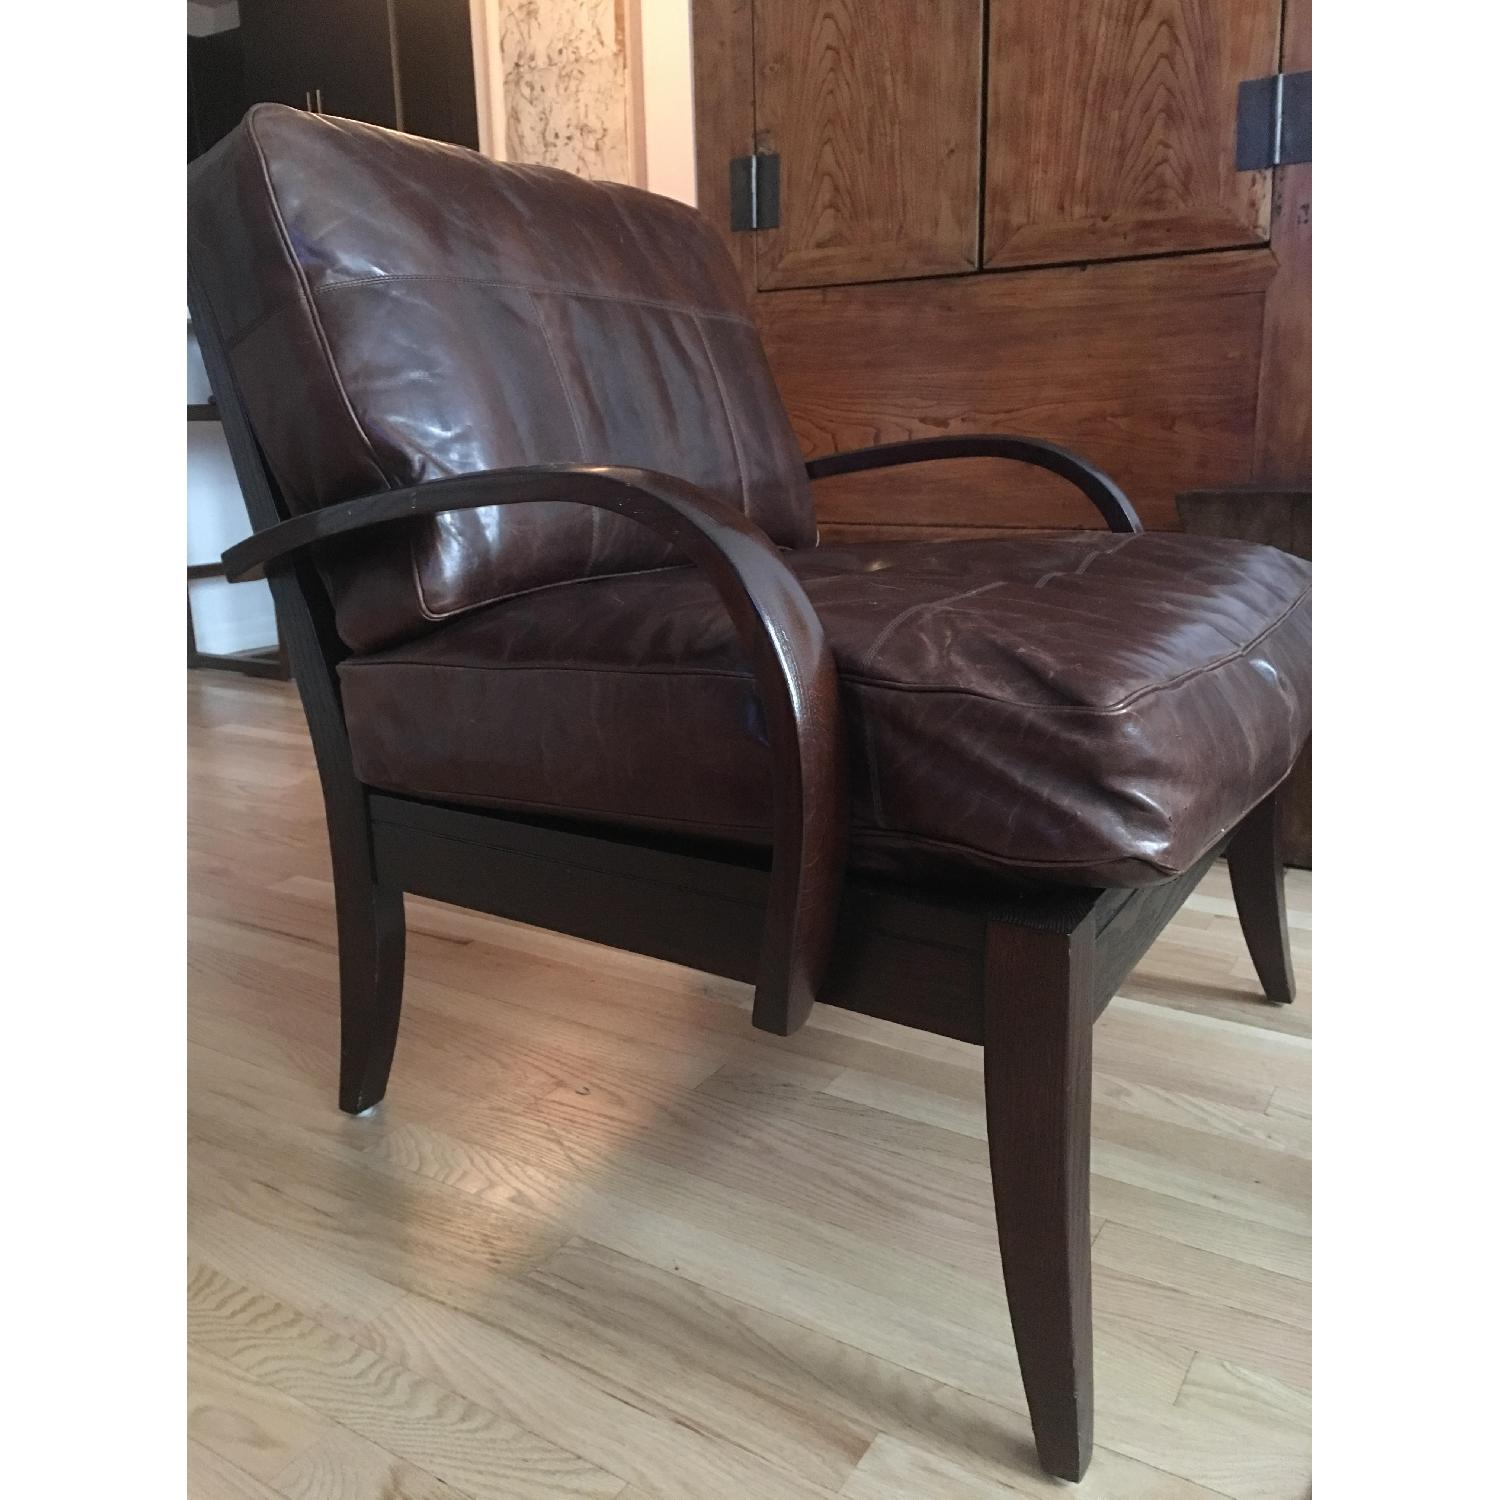 Mulholland Brothers Leather Accent Chairs AptDeco